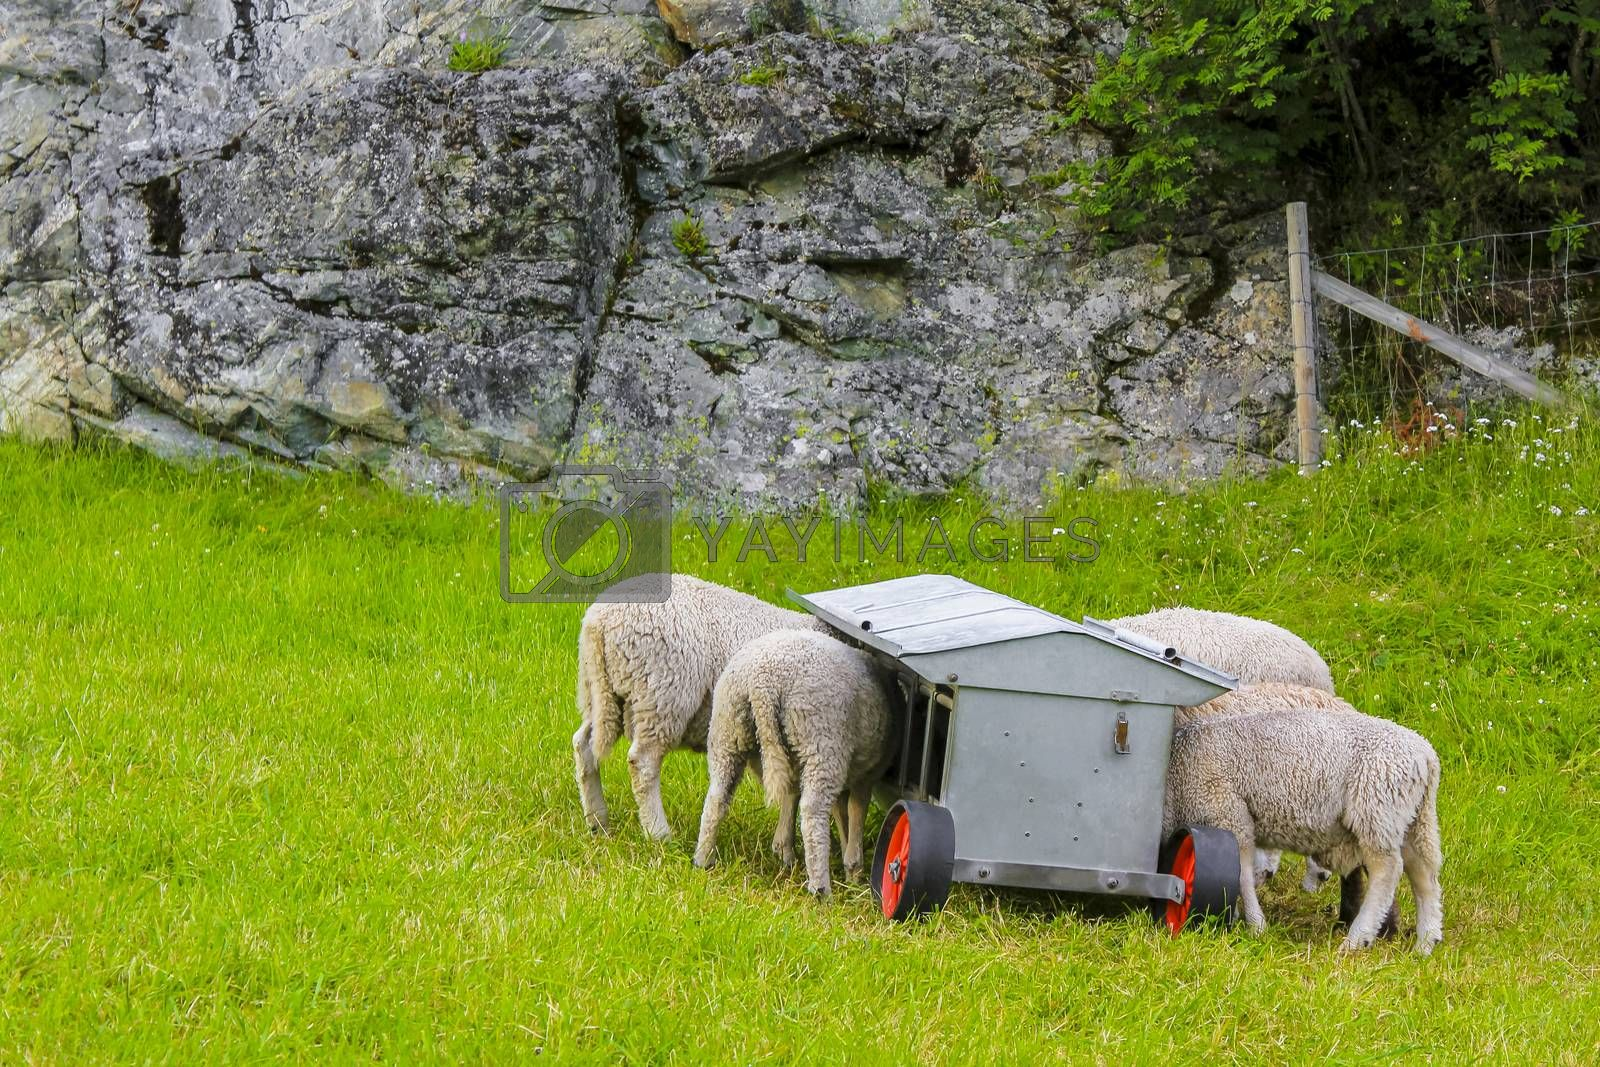 Hungry sheep eat from feed wagons in Hemsedal, Norway.